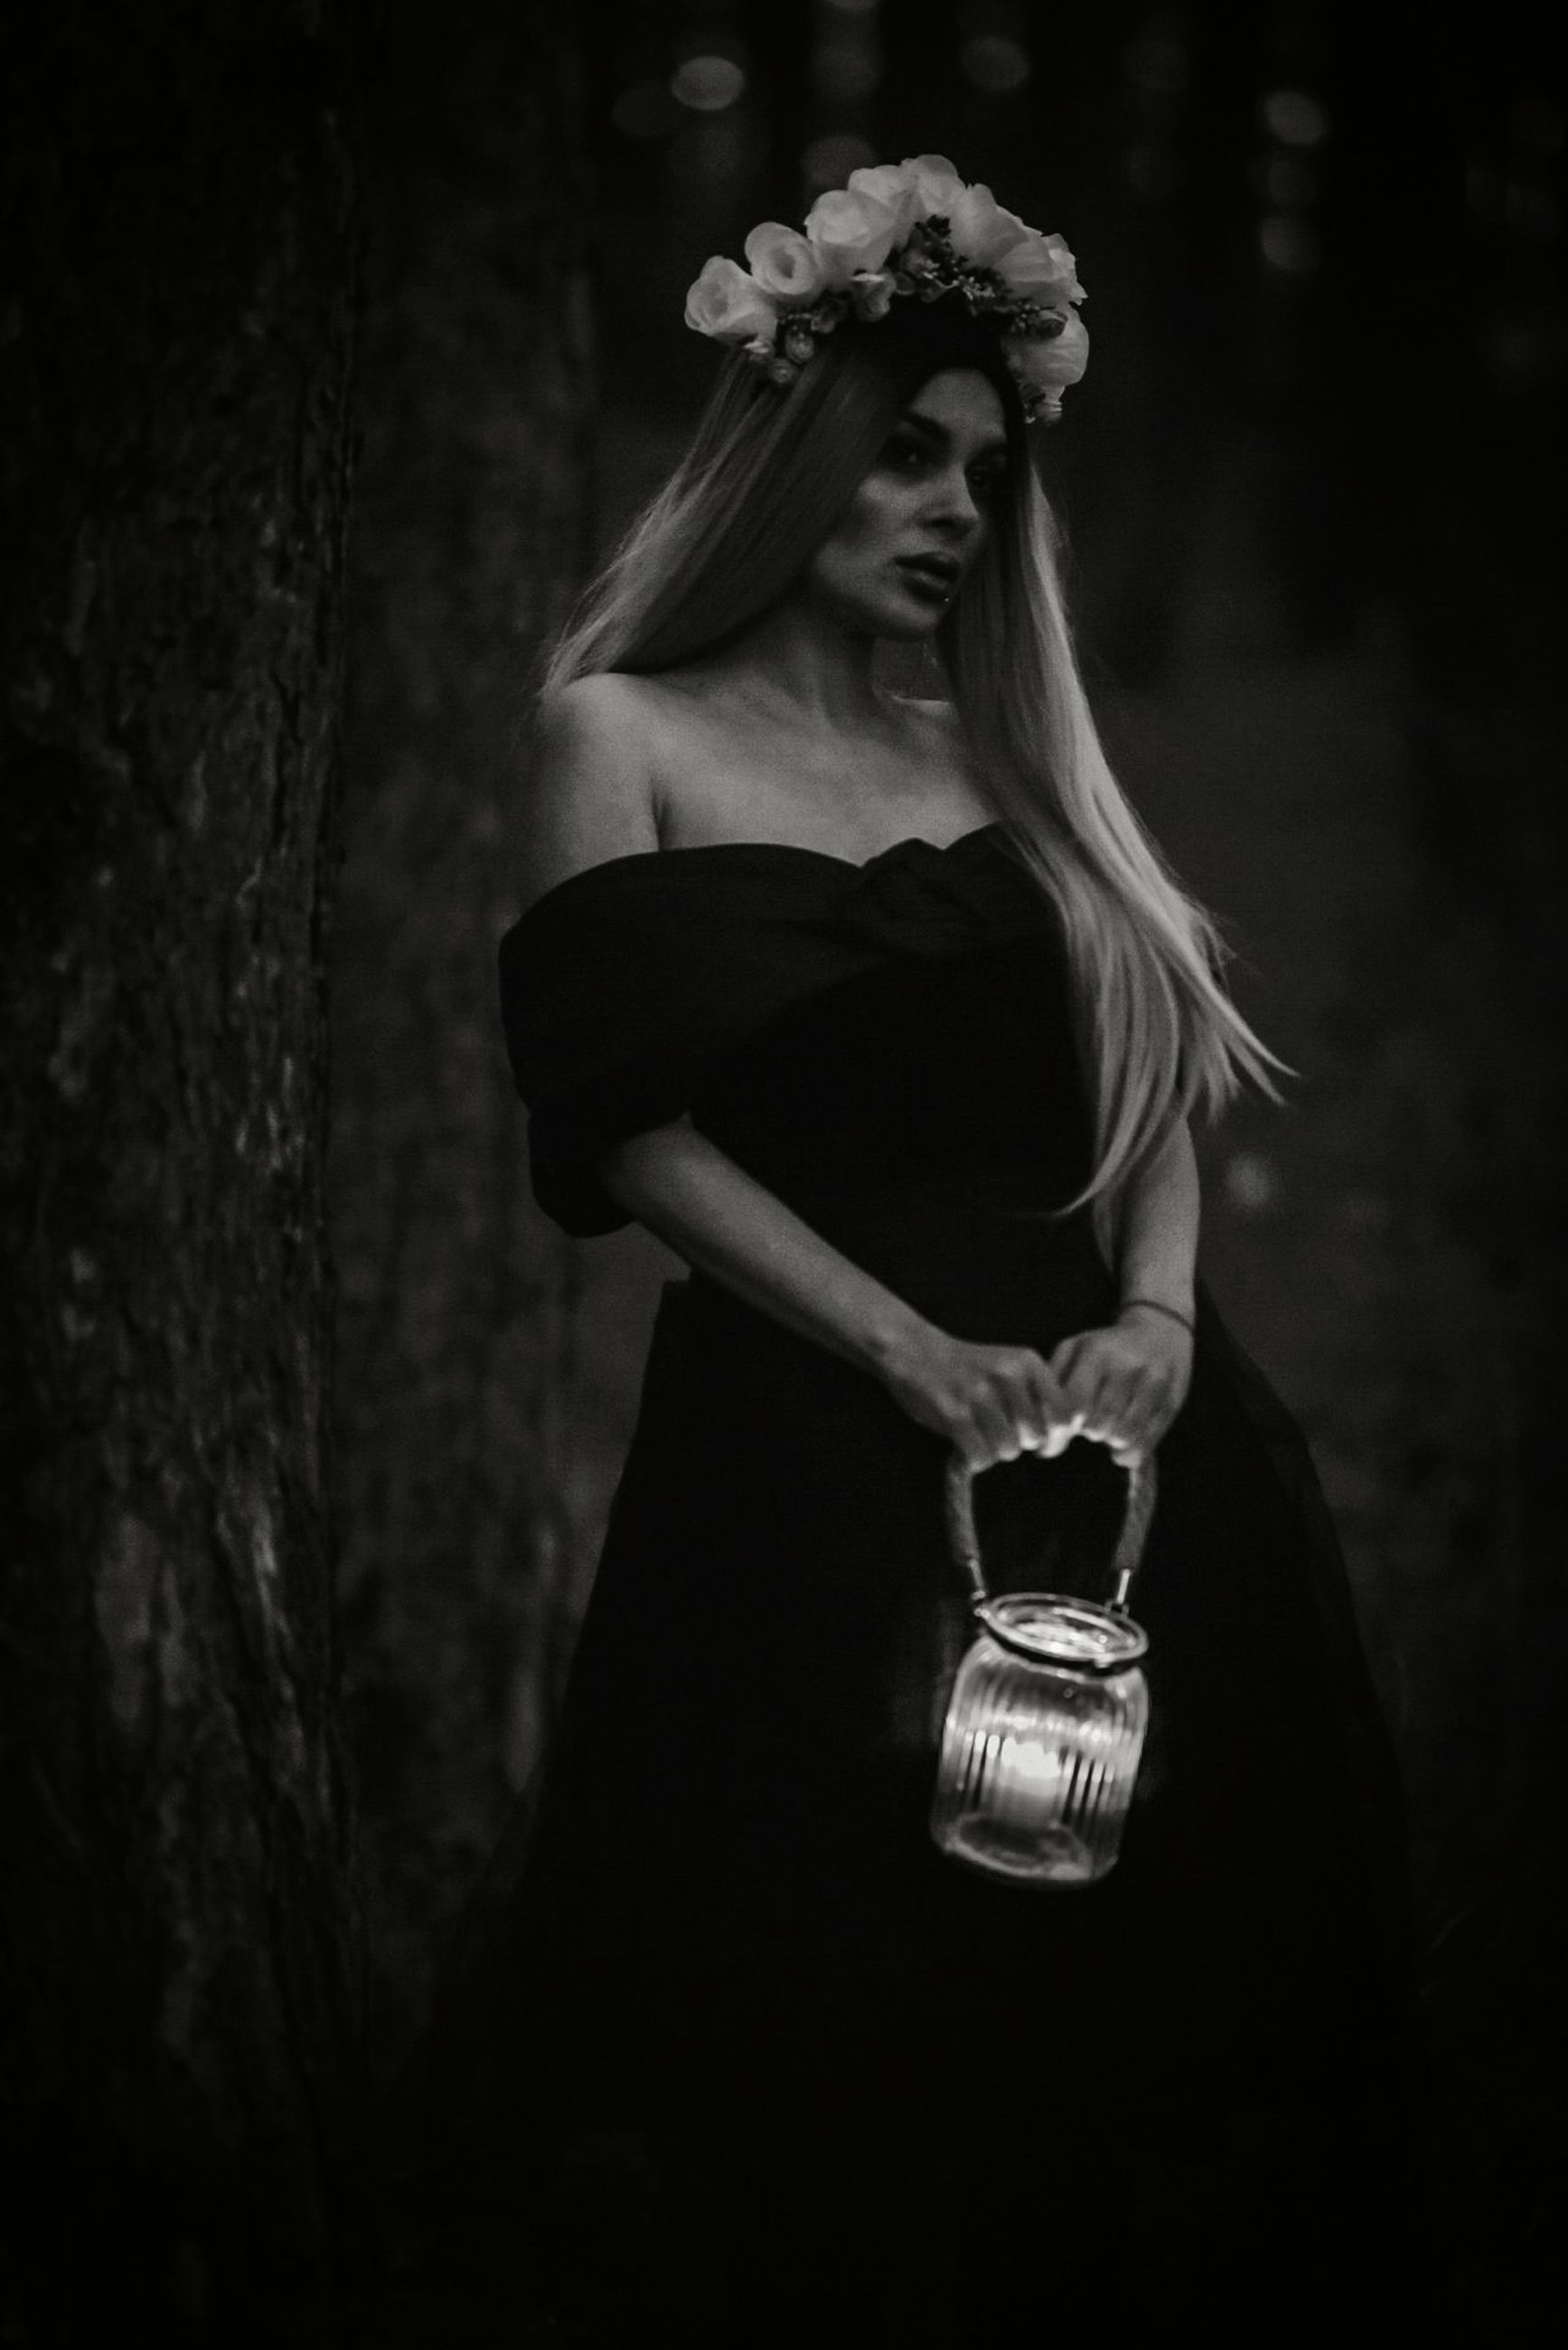 black and white, black, darkness, women, adult, one person, monochrome, monochrome photography, fashion, hairstyle, clothing, young adult, long hair, dress, female, portrait, bride, standing, elegance, dark, nature, emotion, plant, fashion accessory